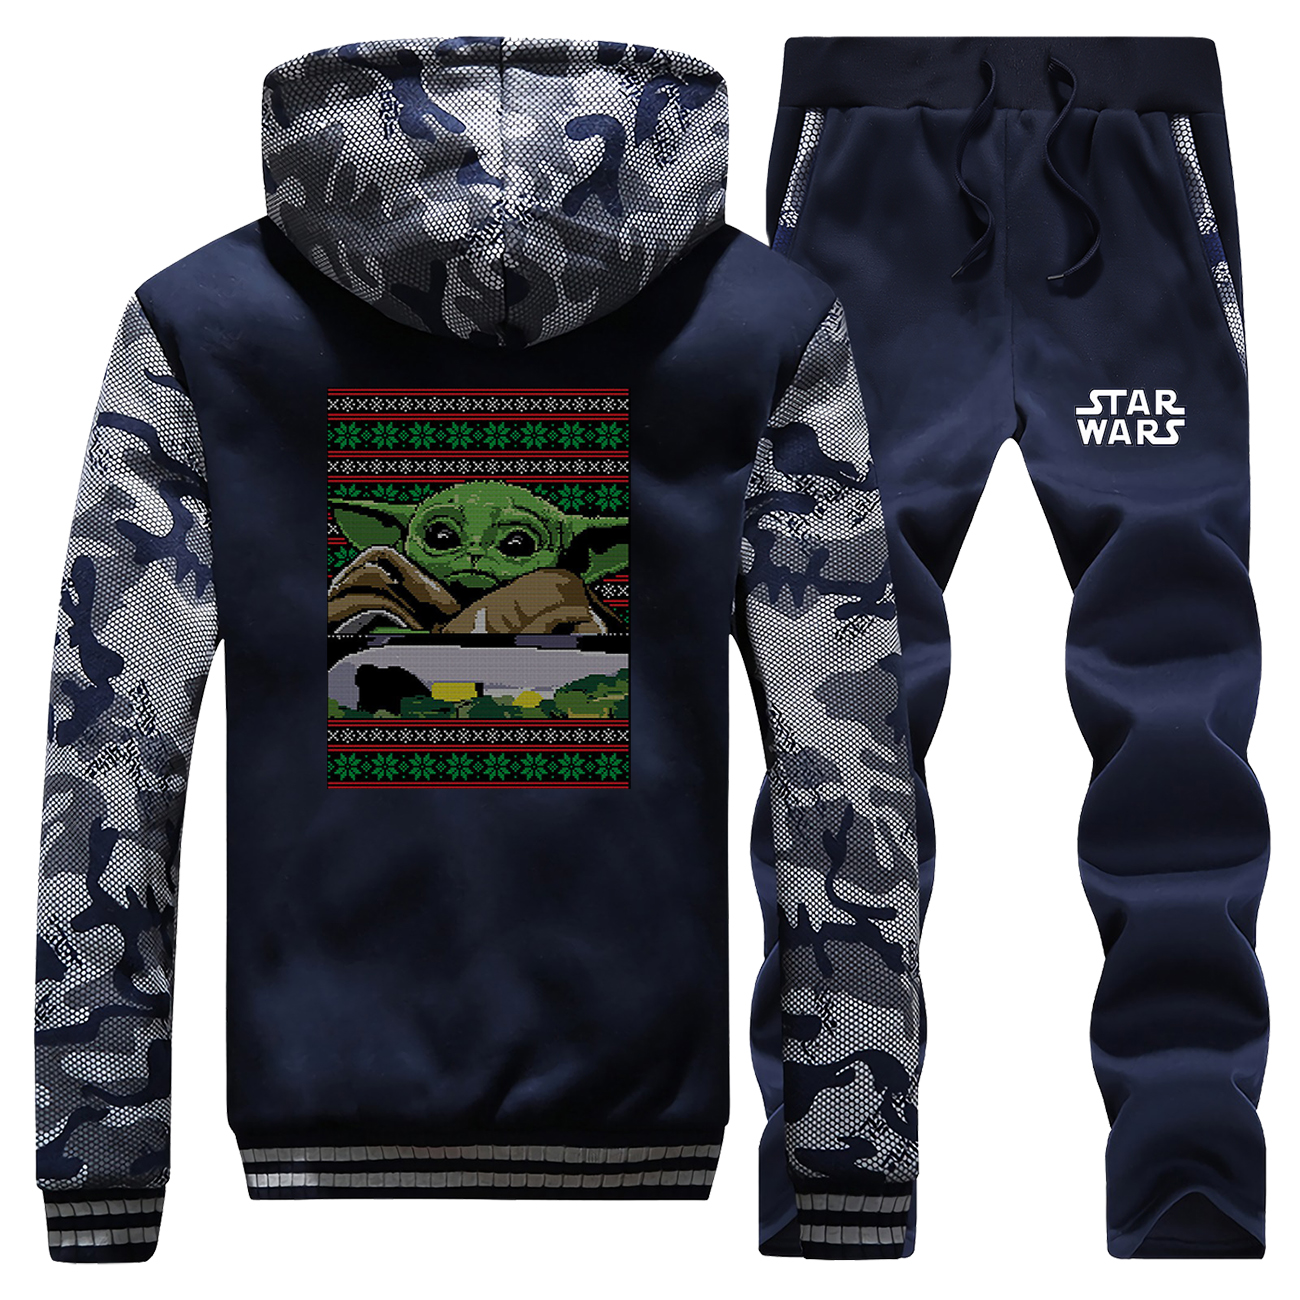 Baby Yoda Winter Men Camo Pants Sets Thick Warm Fleece Jacket Star Wars Print Cartoon Hoodies Raglan Sleeve Jackets Thicken Coat